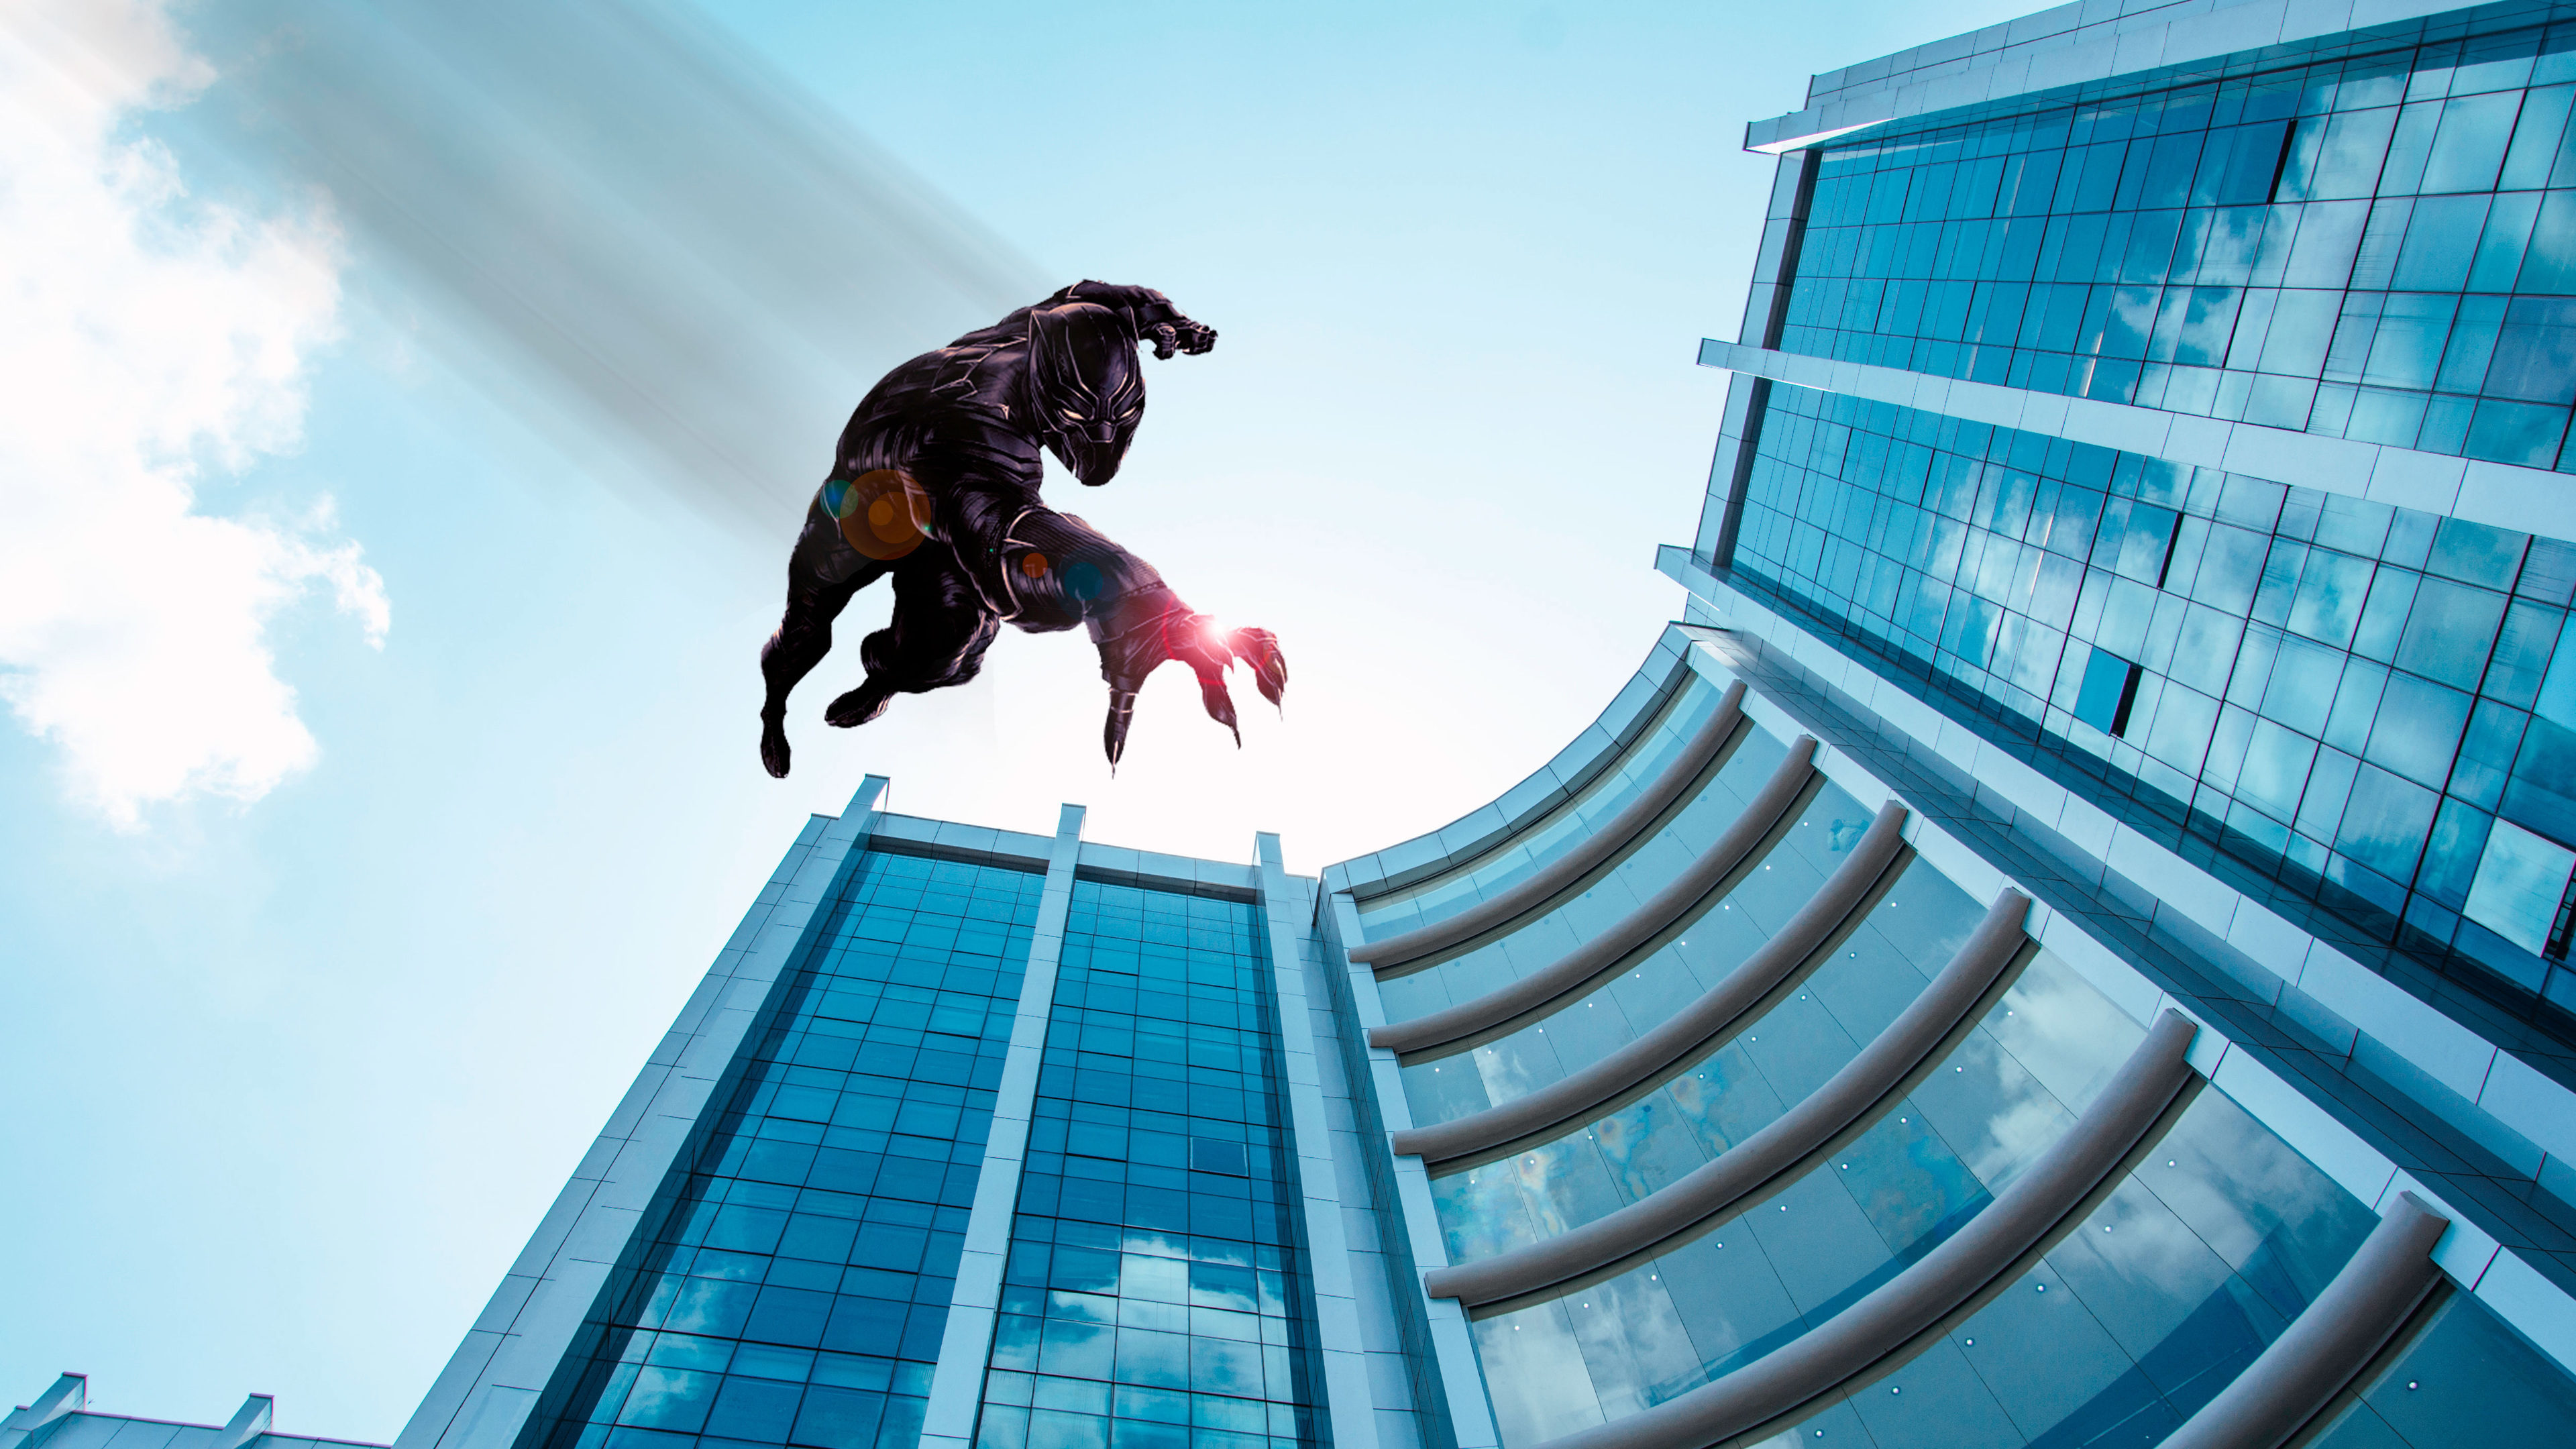 black panther jumping from the building 1536523868 - Black Panther Jumping From The Building - superheroes wallpapers, hd-wallpapers, black panther wallpapers, 5k wallpapers, 4k-wallpapers